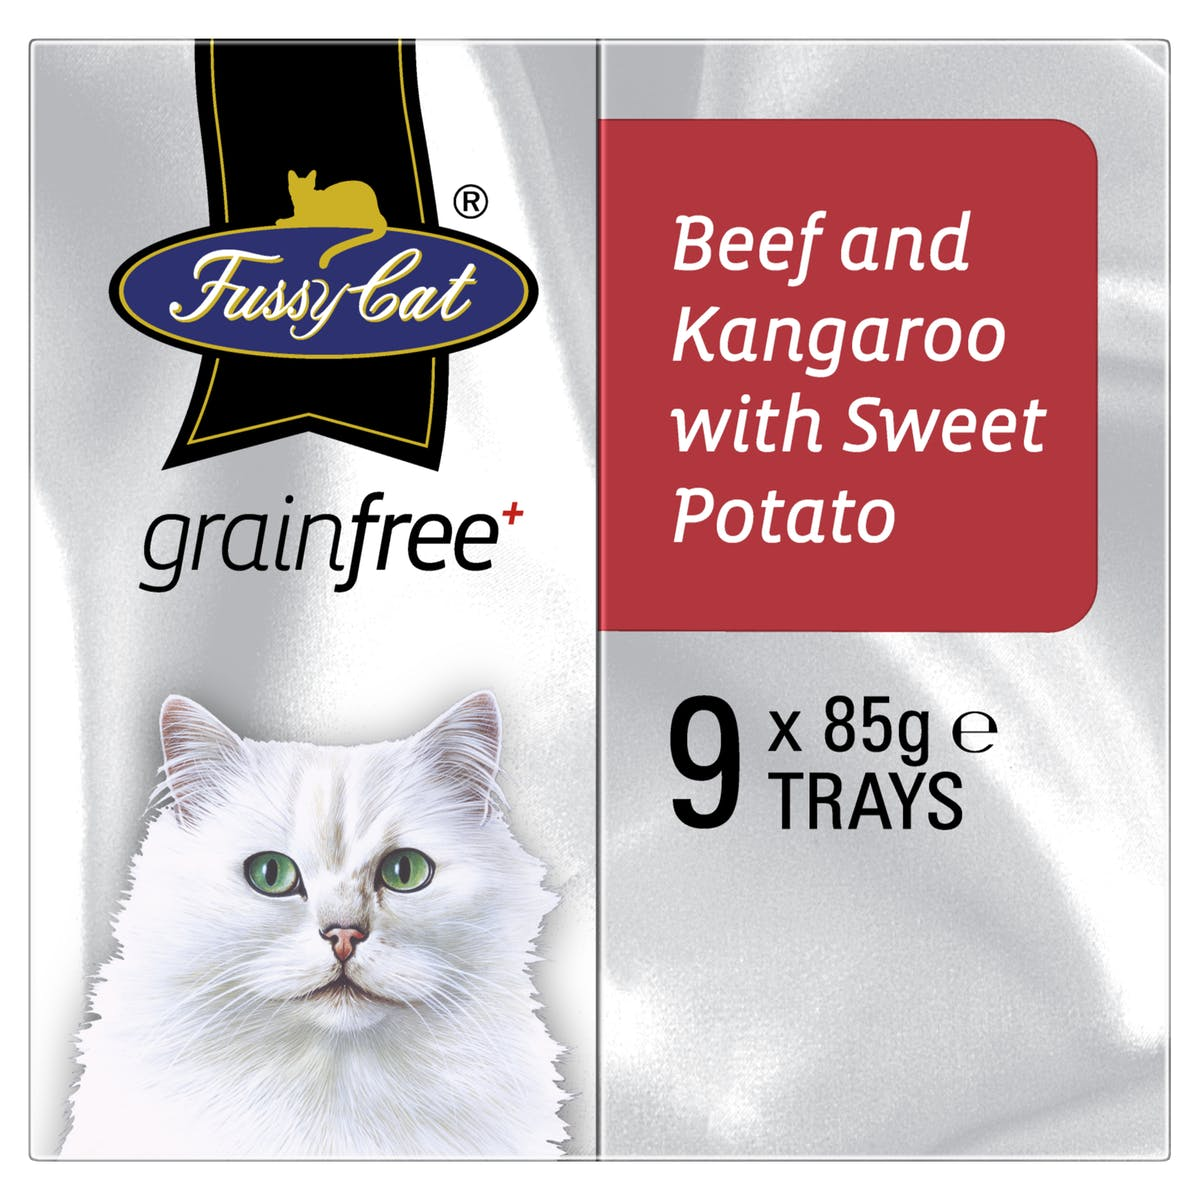 Fussy Cat | Beef and Kangaroo with Sweet Potato 9 x 85g | Wet Cat Food | Left of pack